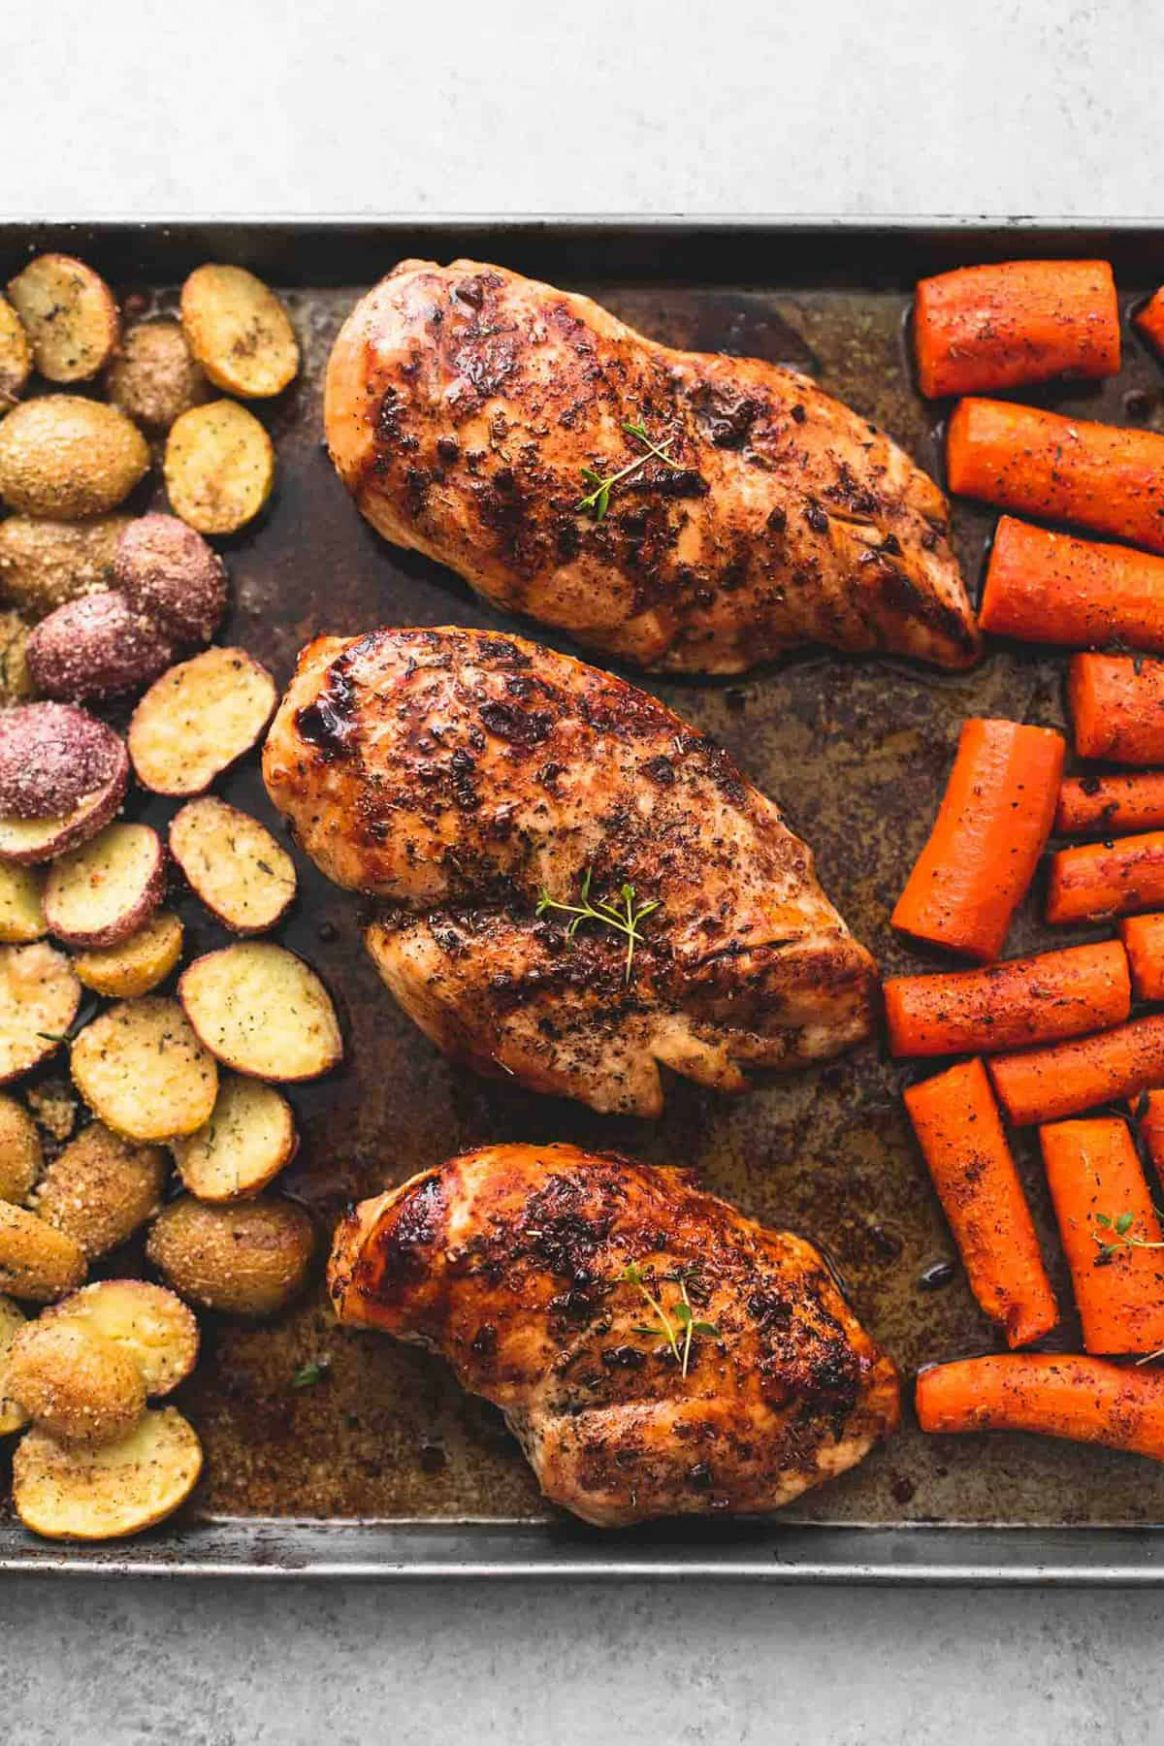 Sheet Pan Balsamic Chicken with Potatoes and Carrots - Recipes Chicken Breast With Potatoes